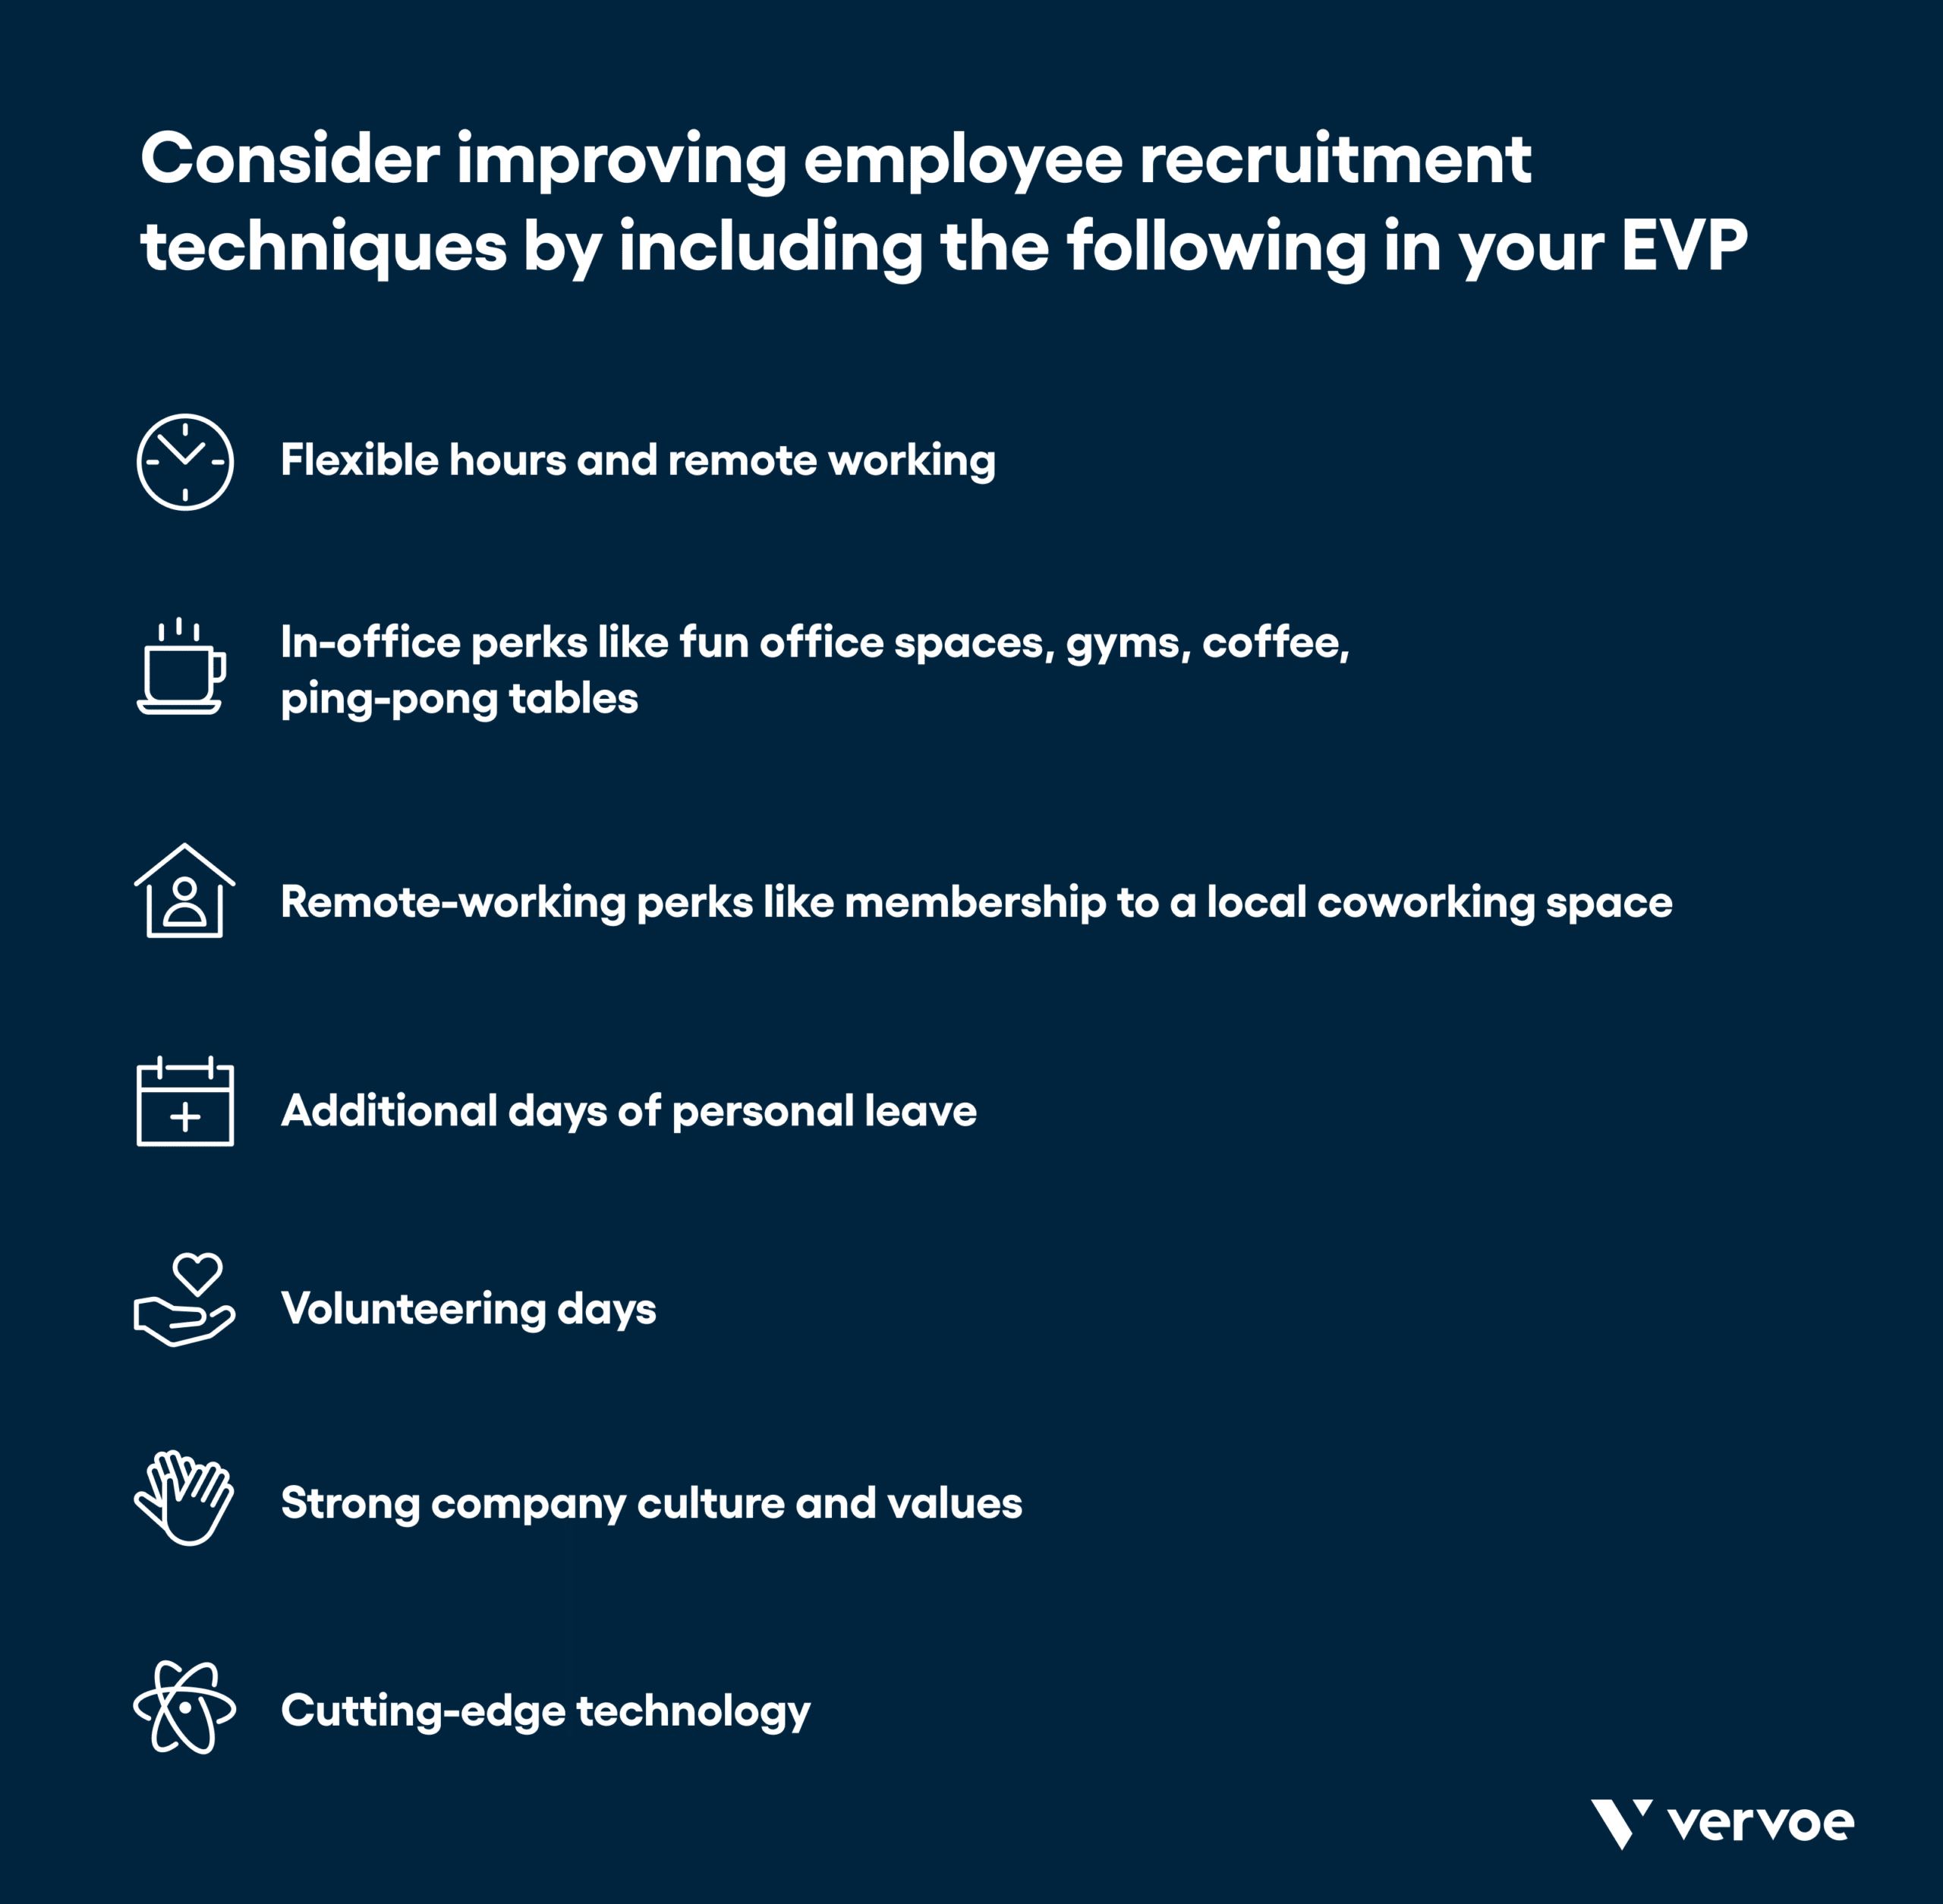 Infographic showing how to improve employee recruitment techniques